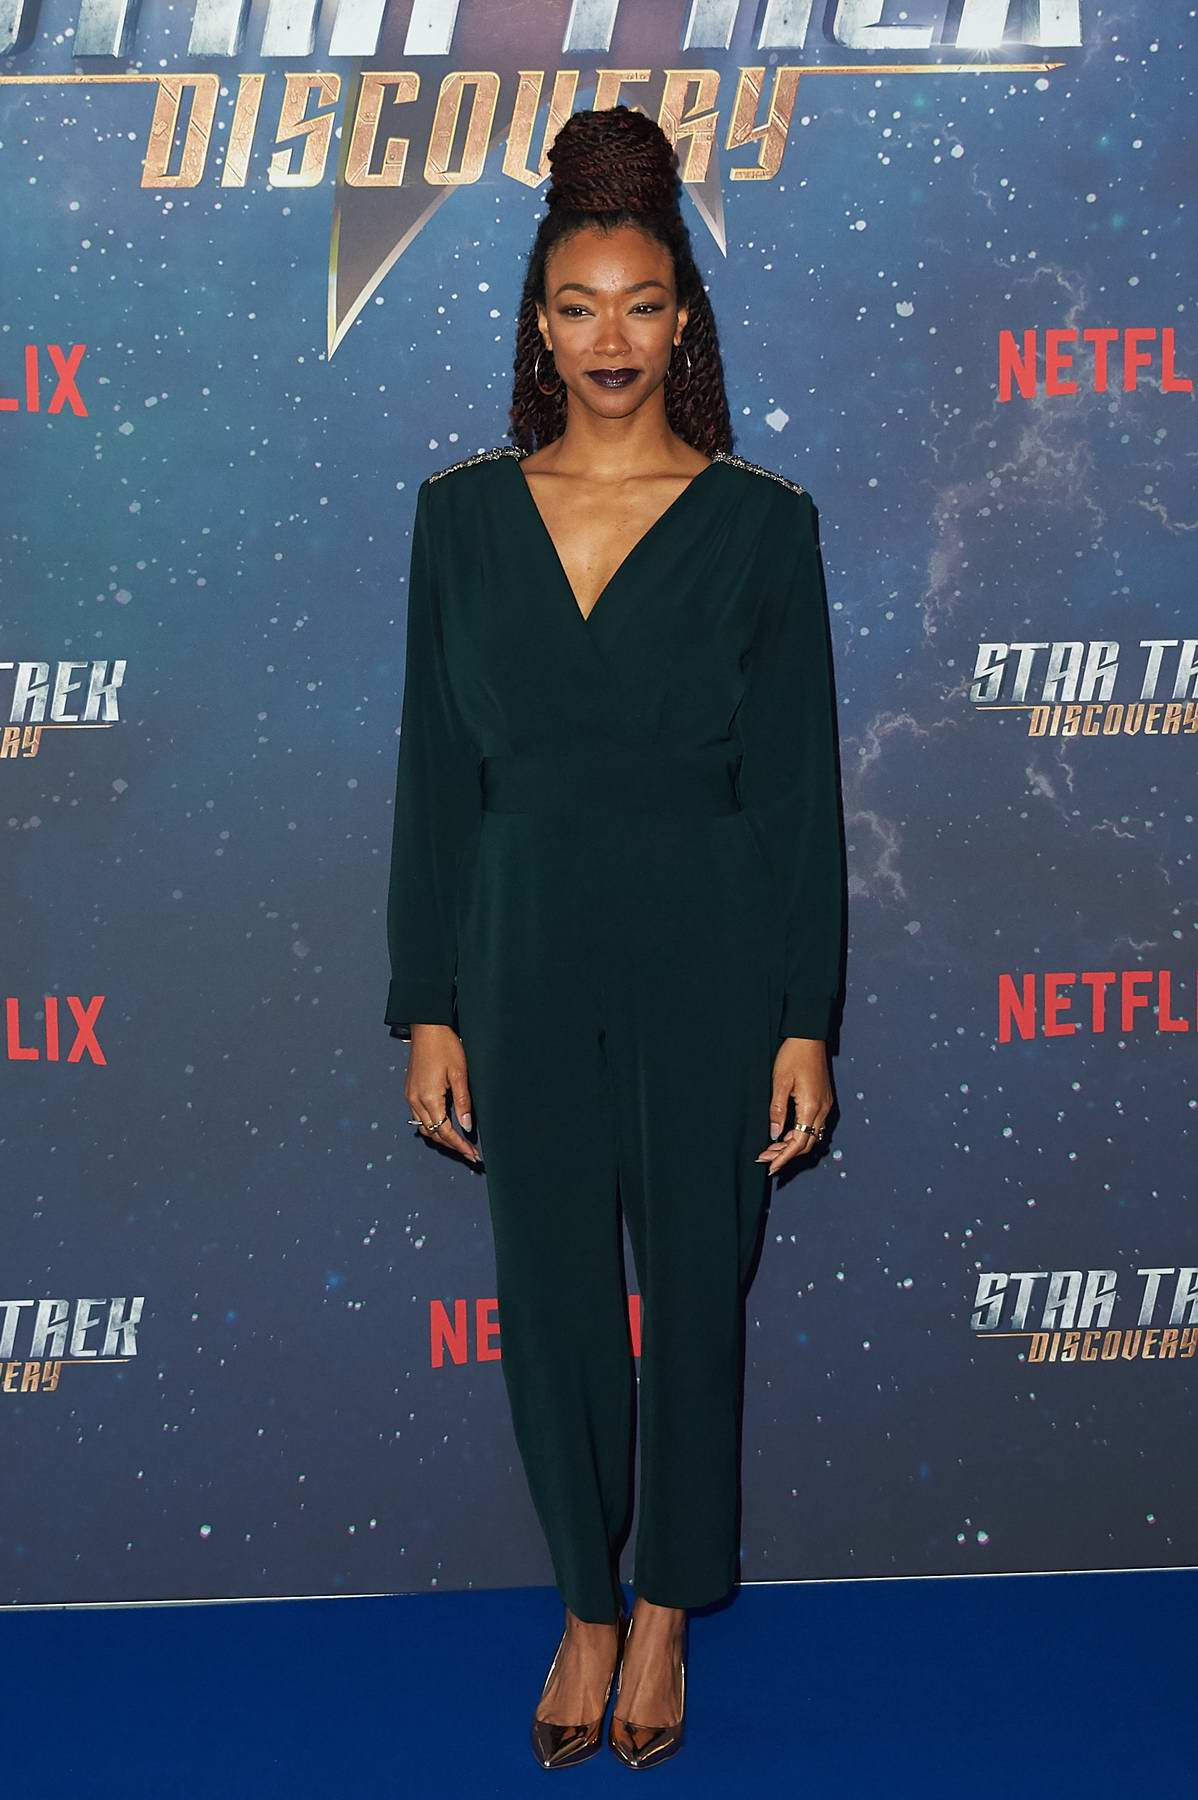 Sonequa Martin-Green attends a fan screening of Star Trek at the Millbank Tower in London